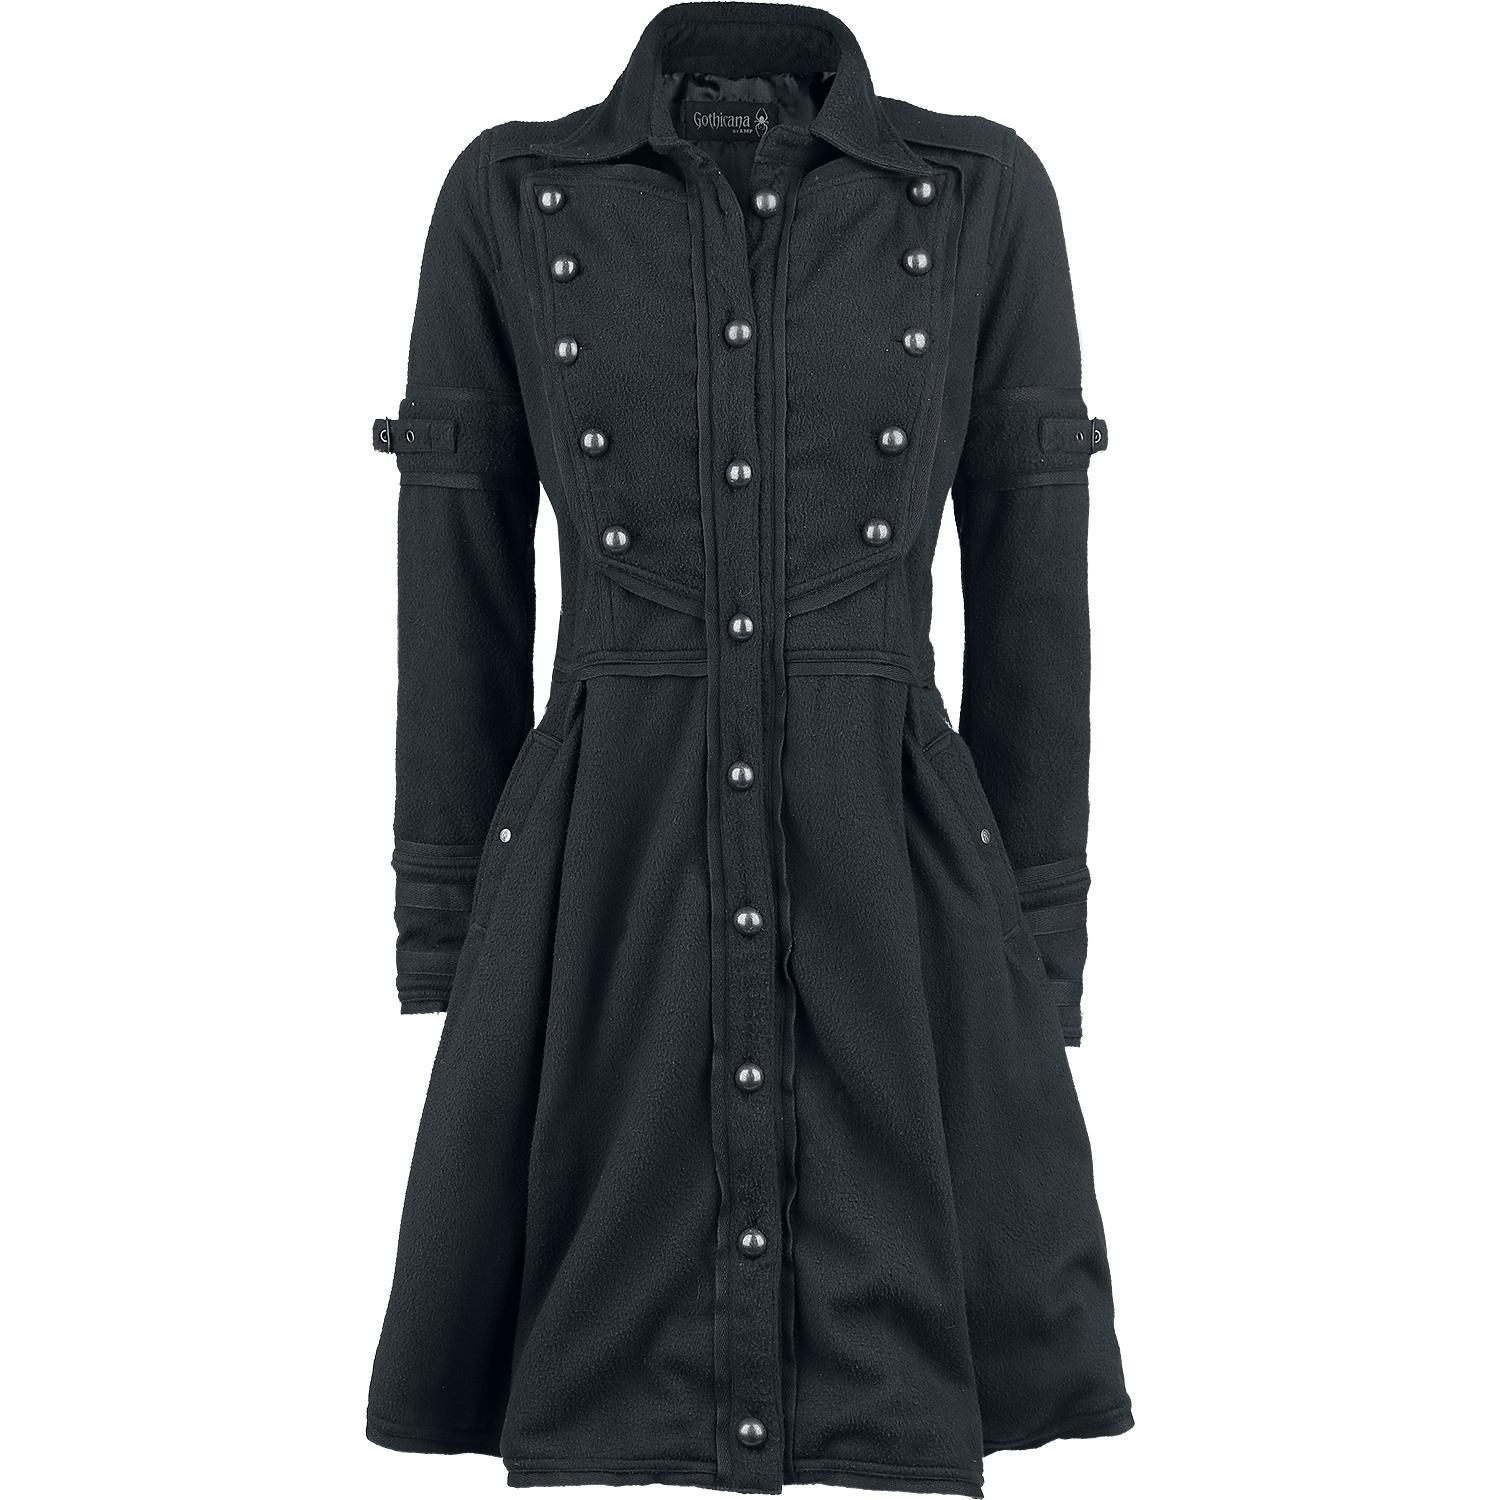 coat Coat Gothicana by Girls Buckle by EMP Article 0nPXN8wkZO